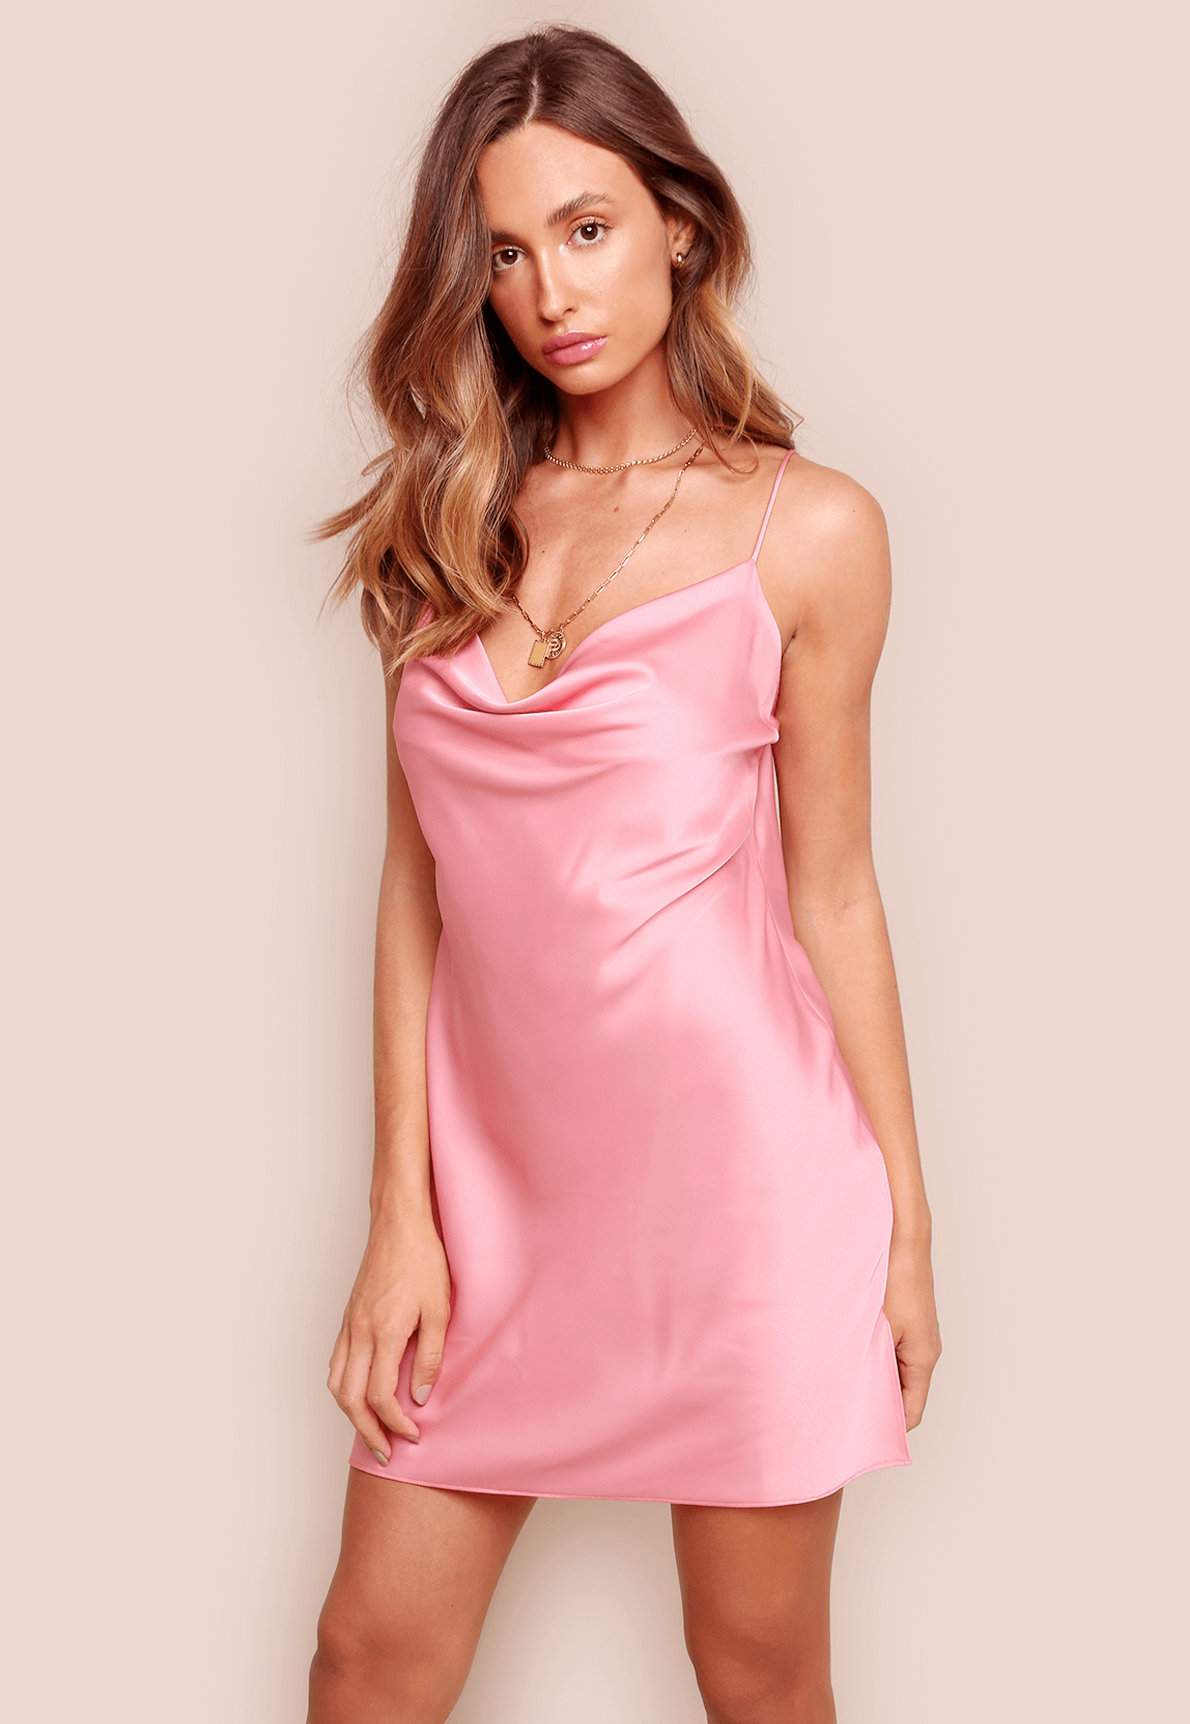 33541-vestido-sleep-dress-gloss-mundo-lolita-01